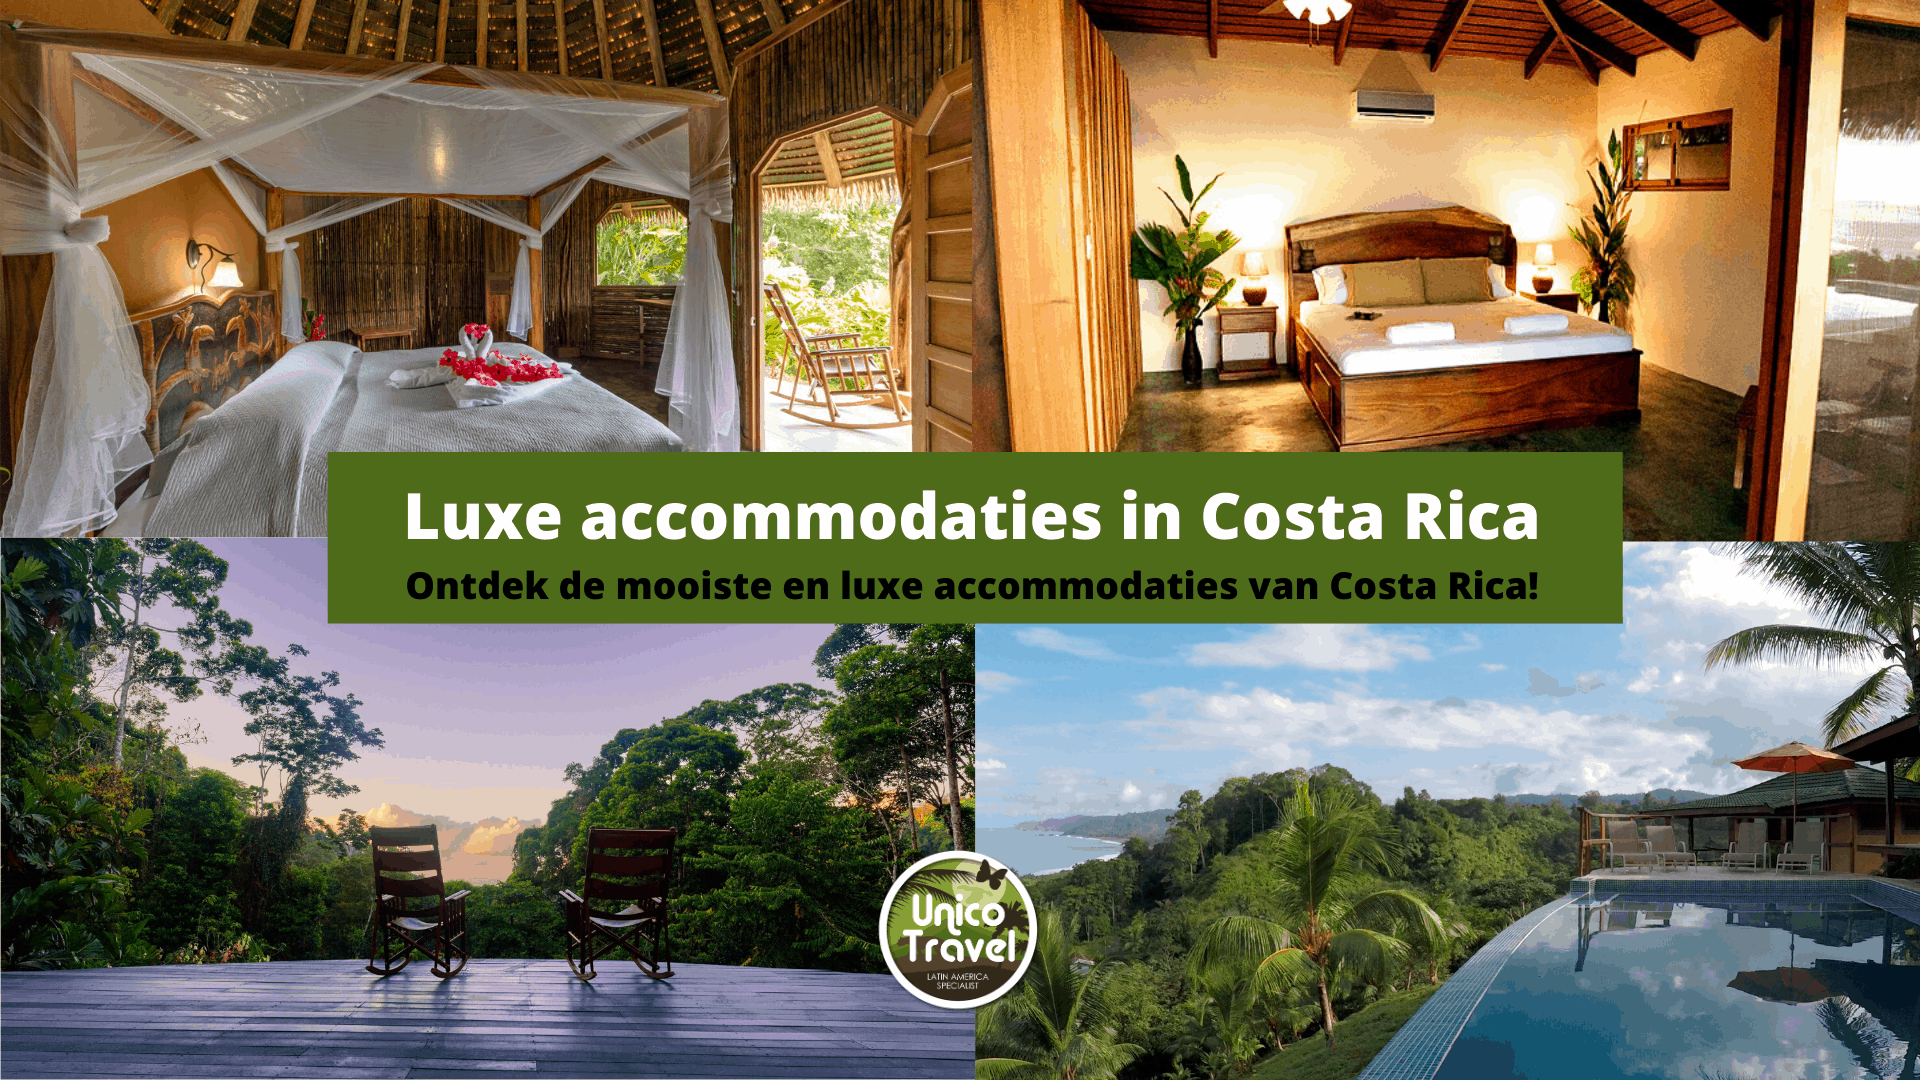 Luxe accommodaties in Costa Rica 11